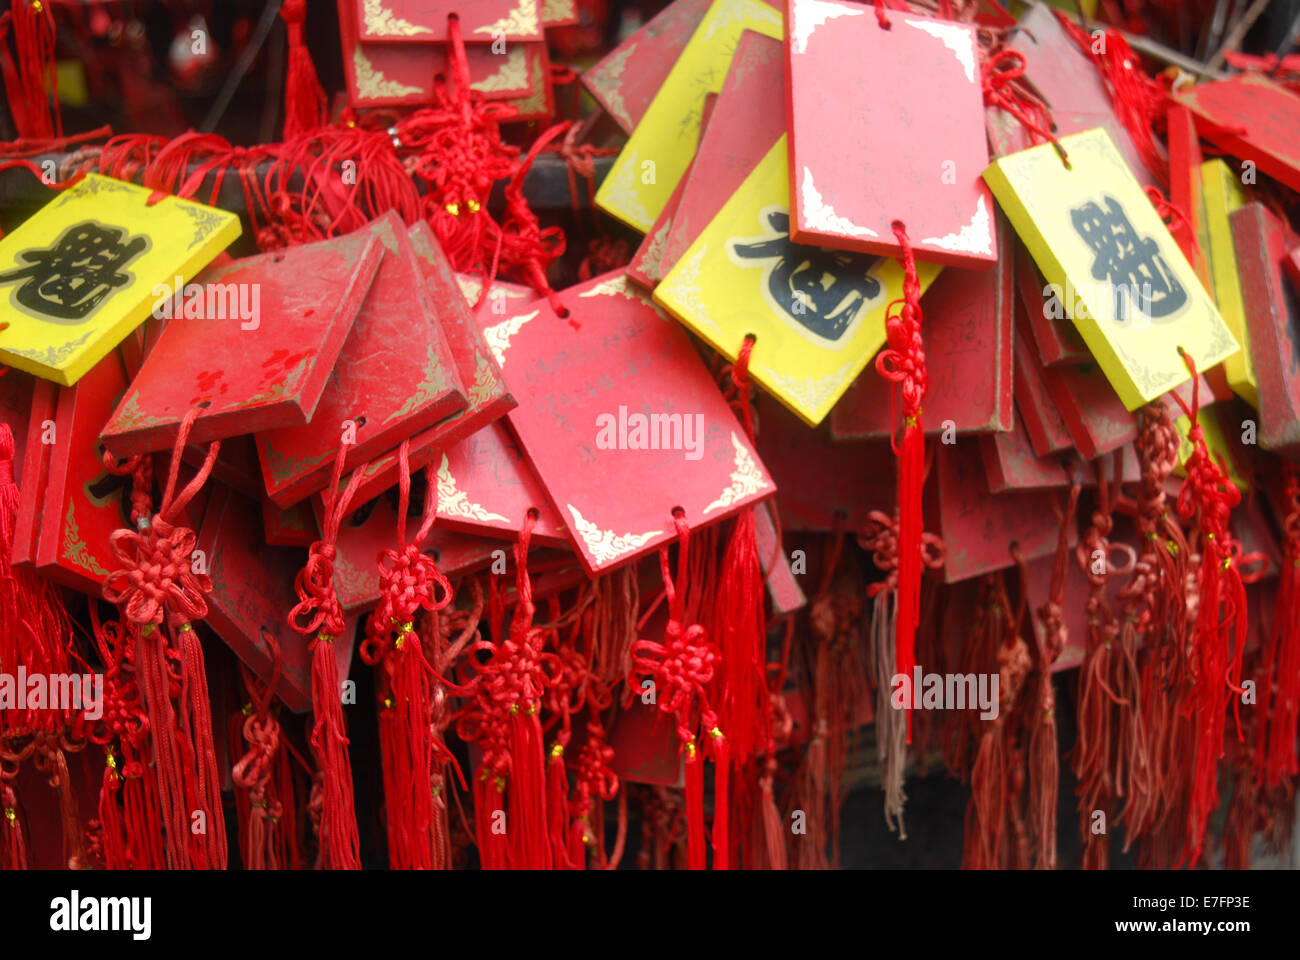 Prayer tags, Pingyao, Shanxi province, China 2014 - Stock Image